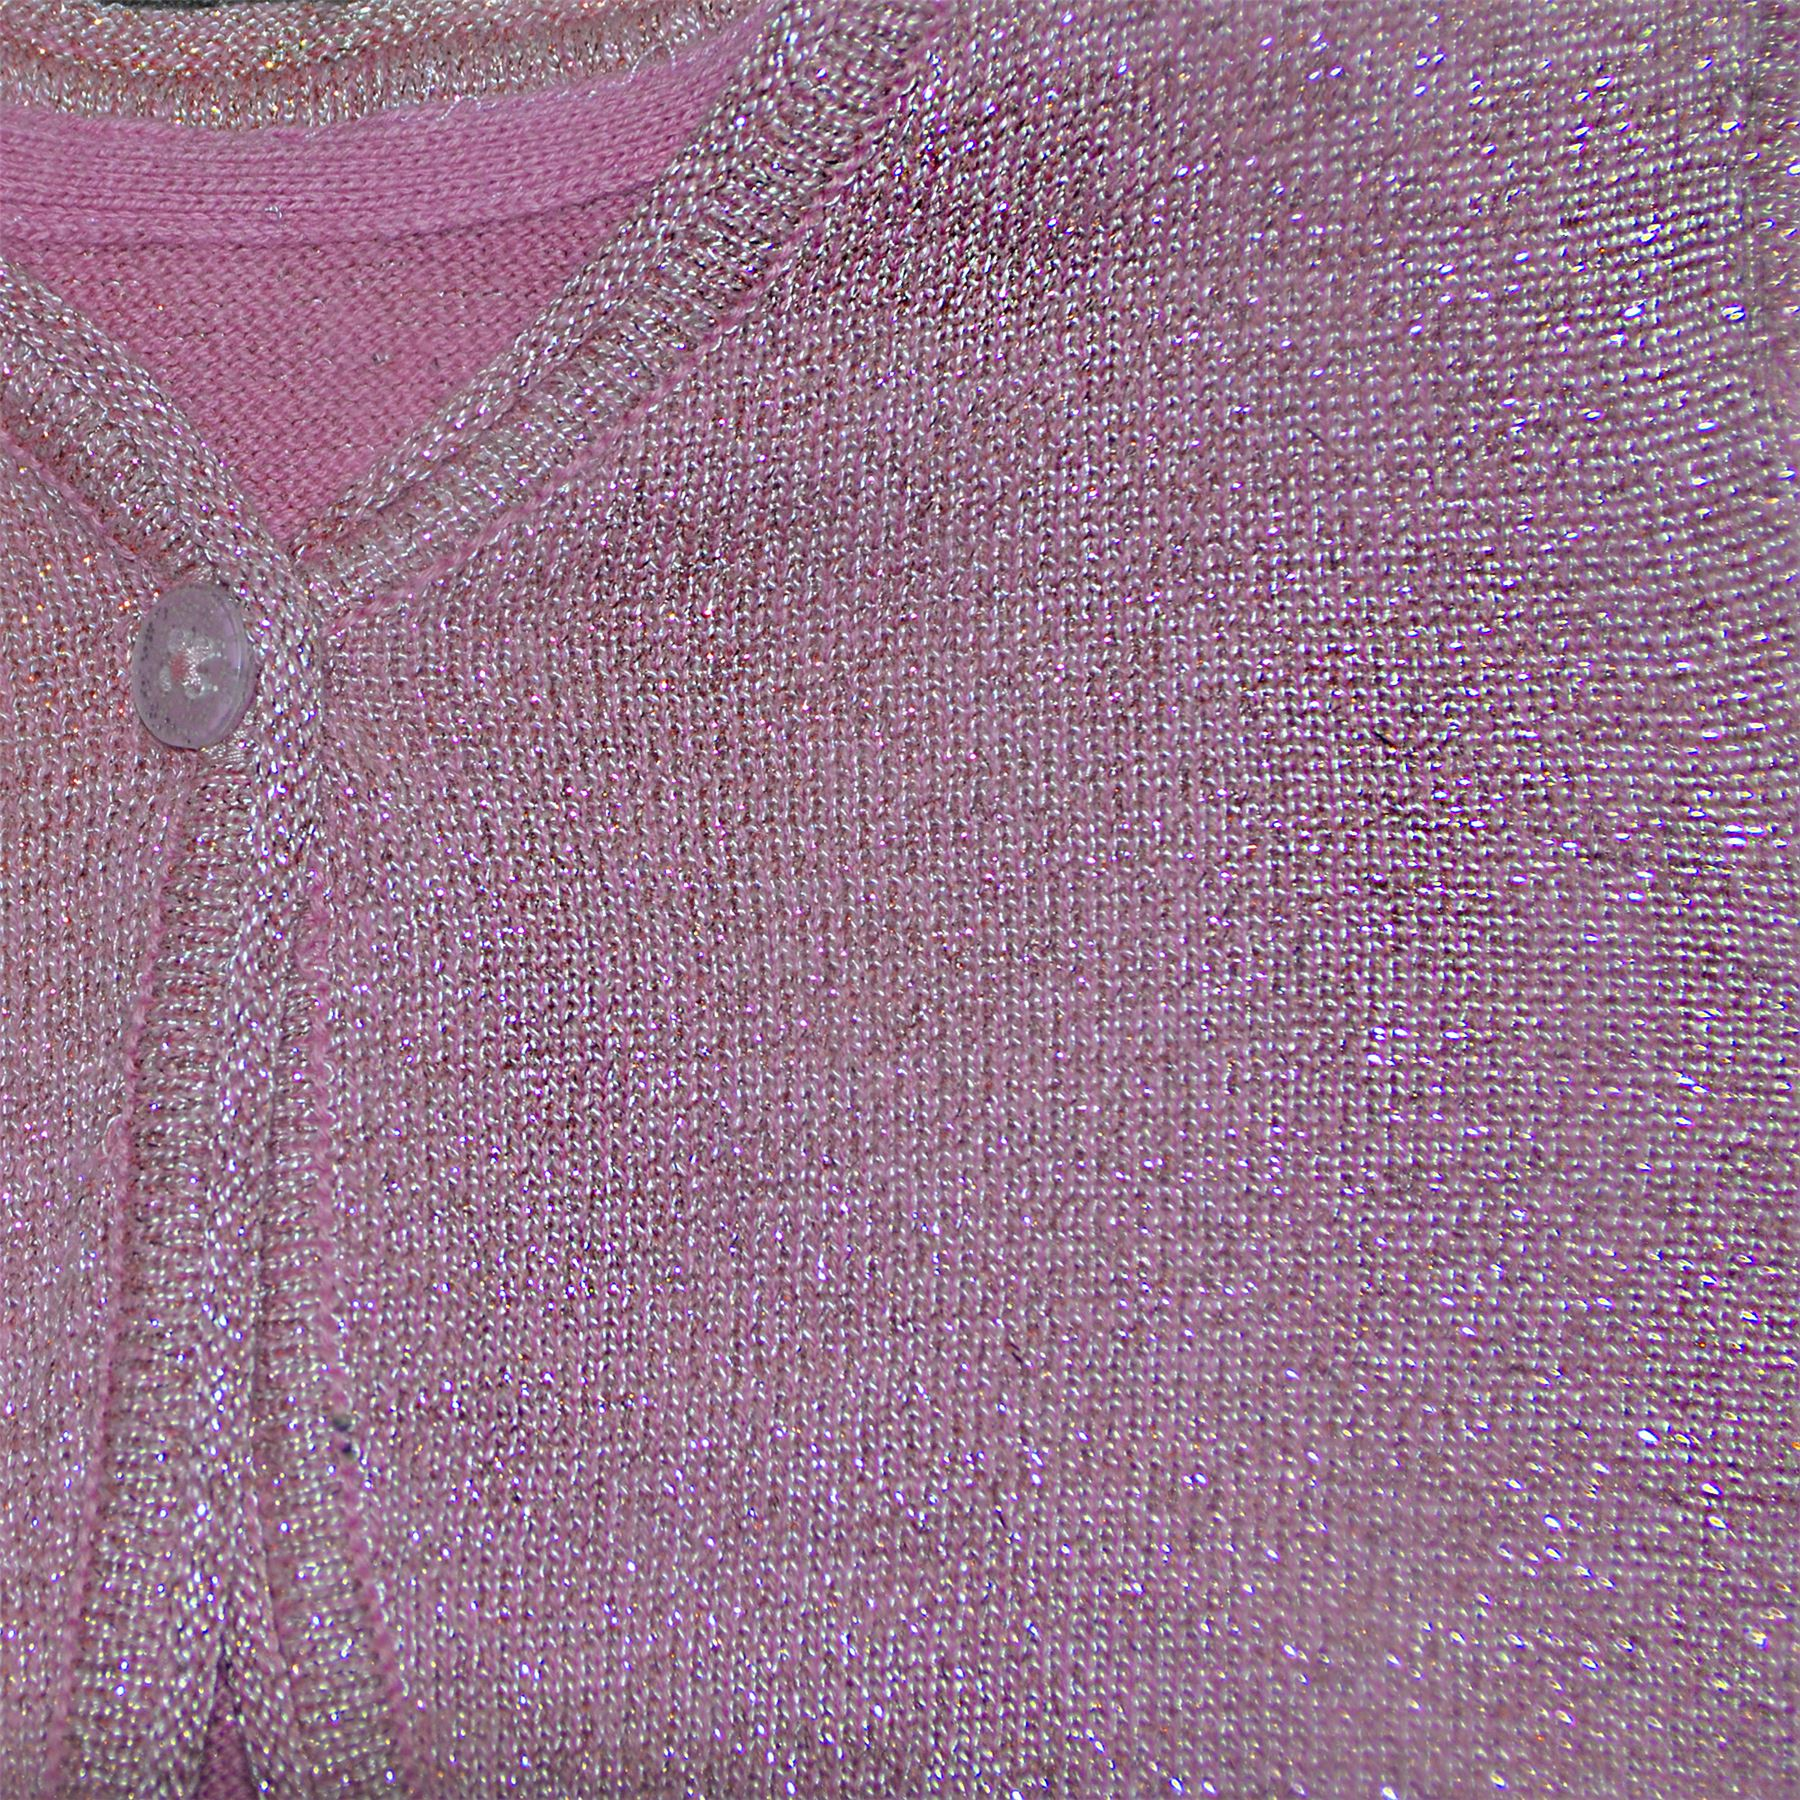 Girls-Knitted-Shrug-Kids-Long-Sleeve-Bolero-Top-Lurex-Glitter-Effect-Cardigan thumbnail 7